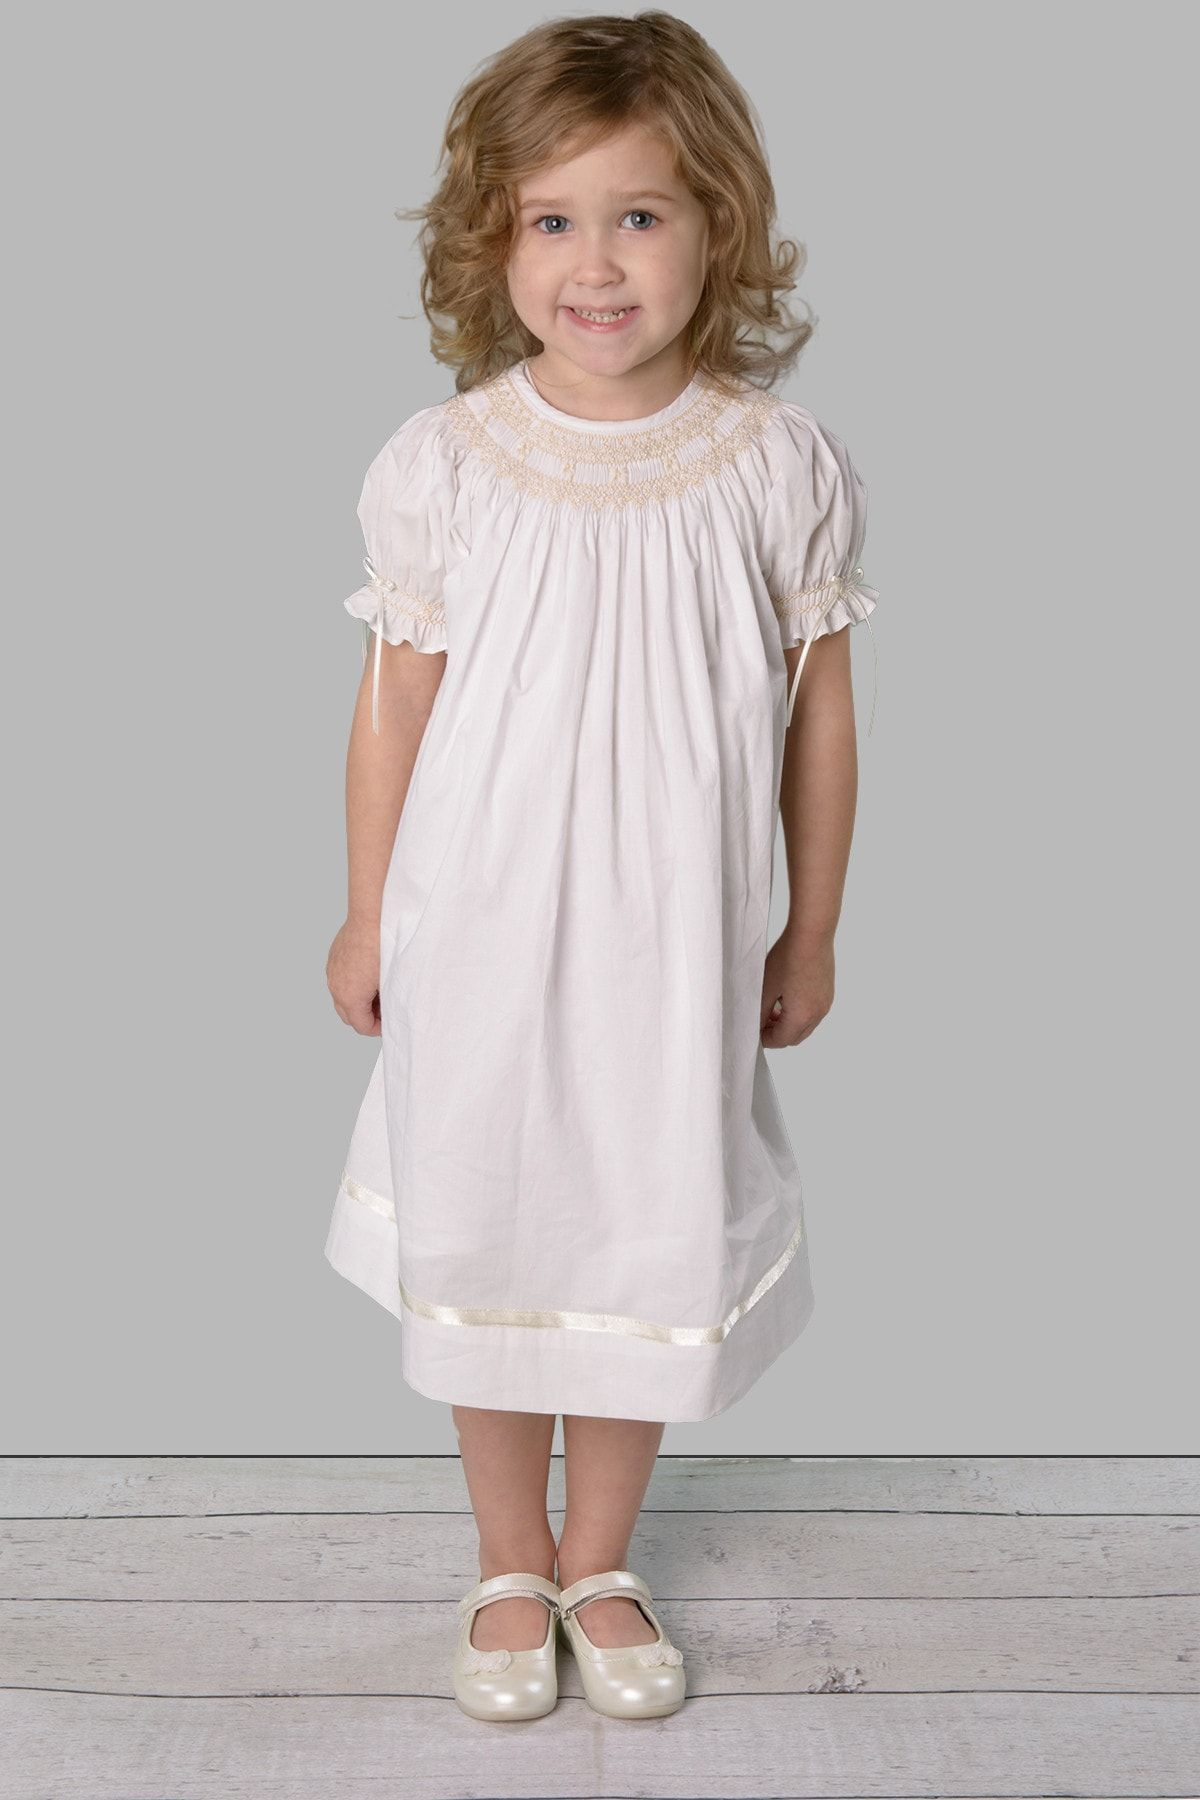 4242aa30907b Cotton white dress hand-smocked and embroidery with pearls and ...